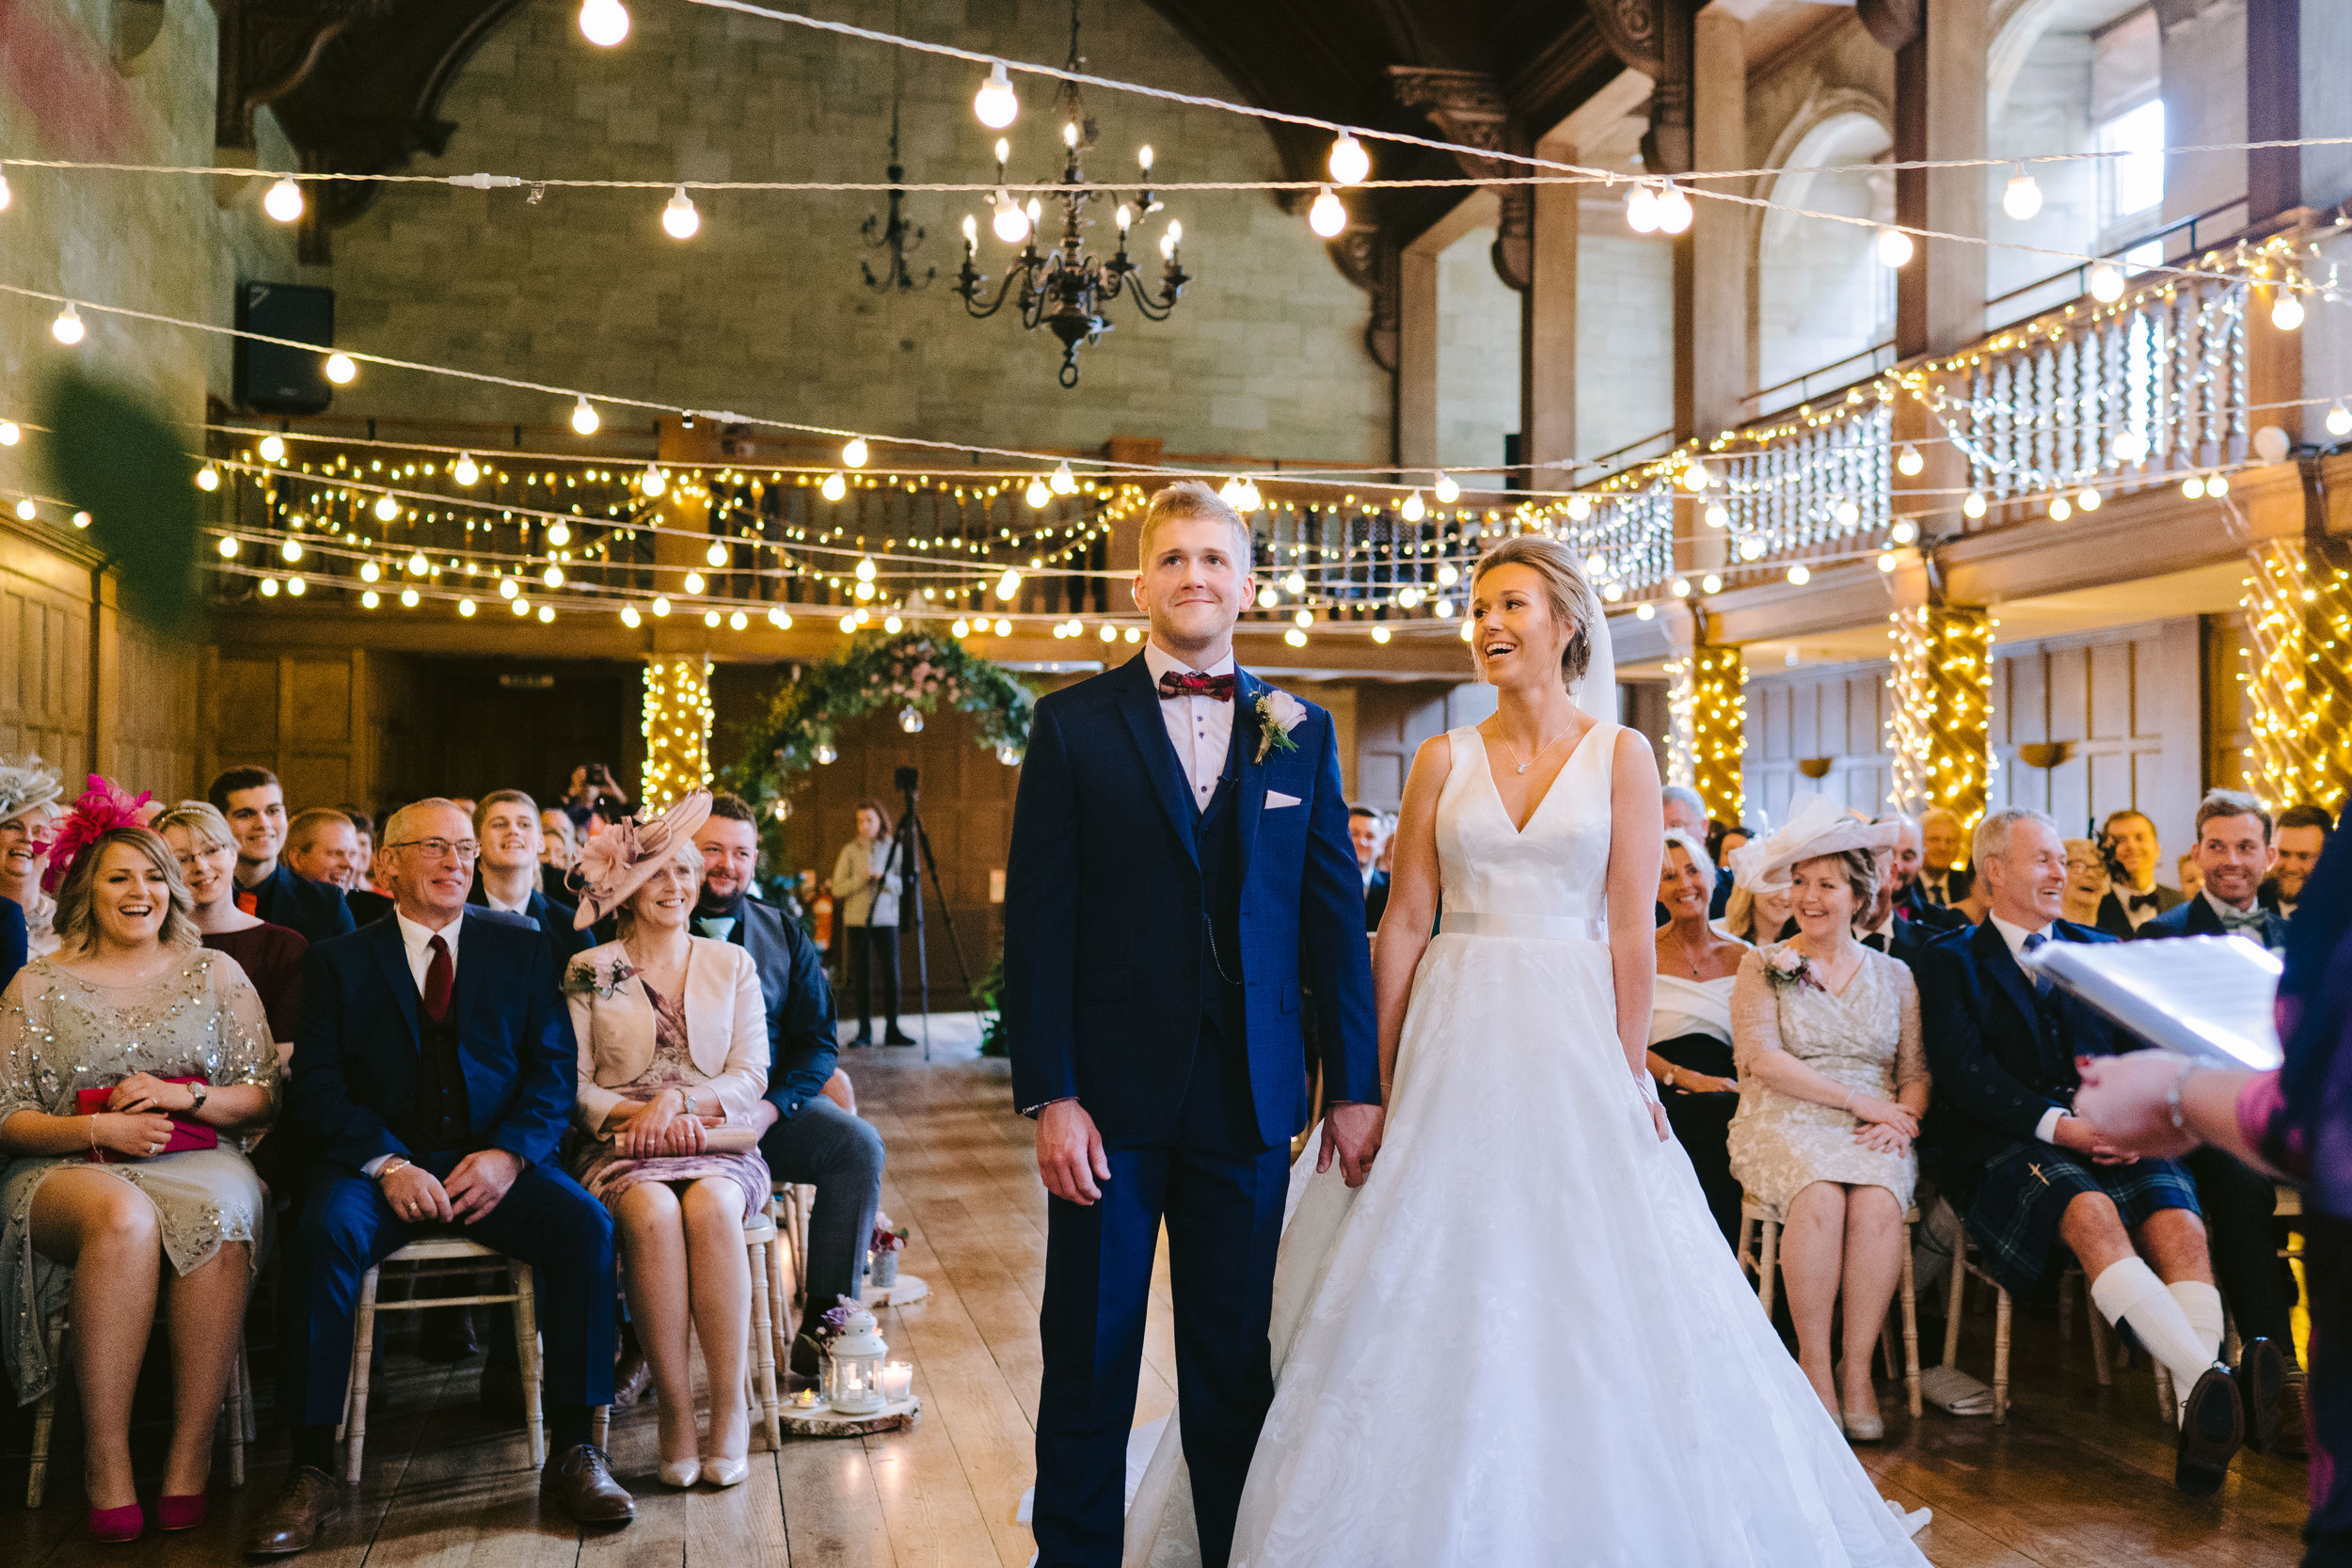 Suzanne Neville For A Fun Filled Scottish Castle Wedding With Festoon Lighting